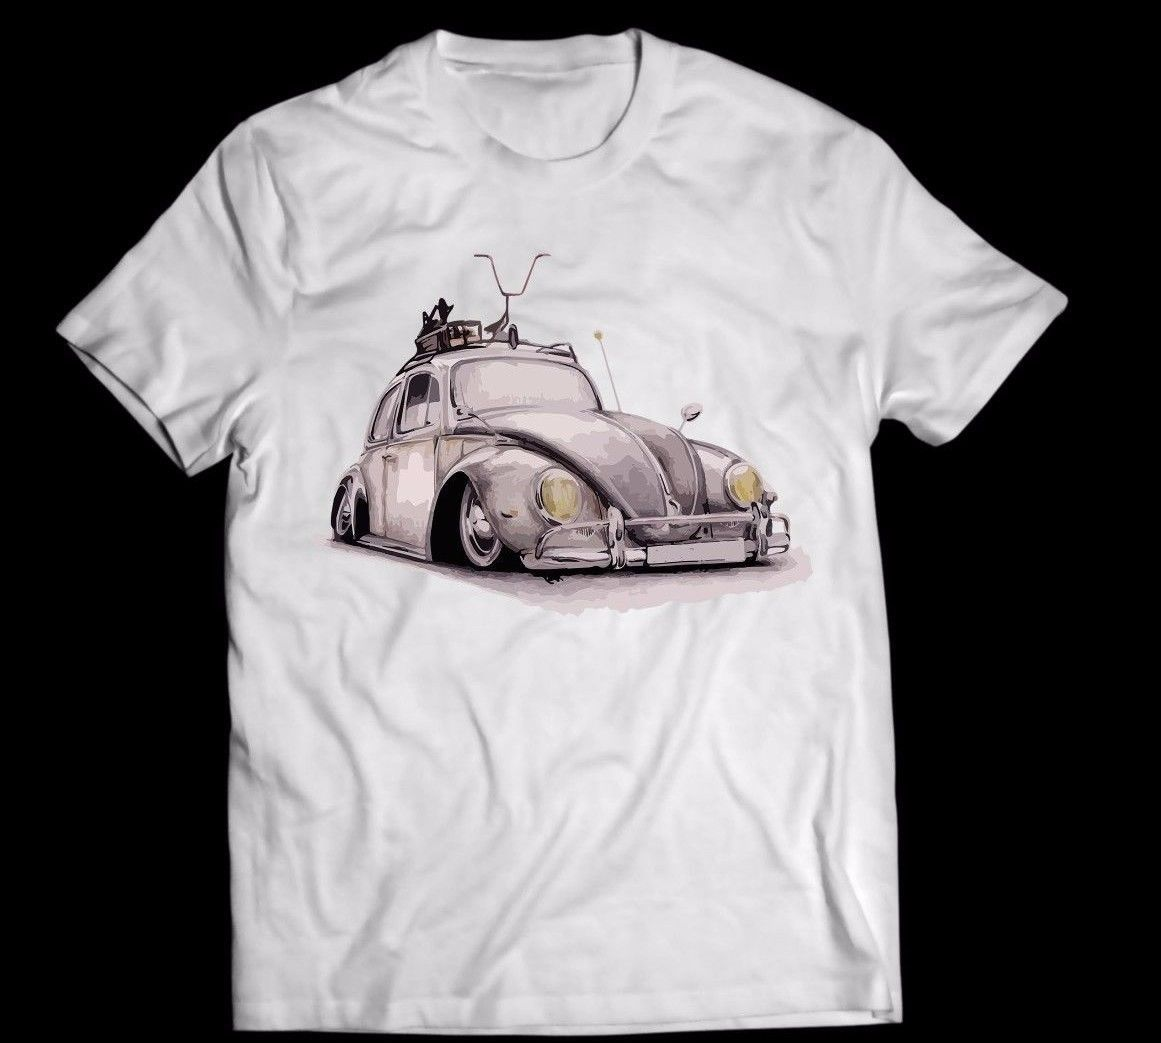 Vw T Shirt Beetle Shirt Volkswagen Shirt Beetle T Shirt